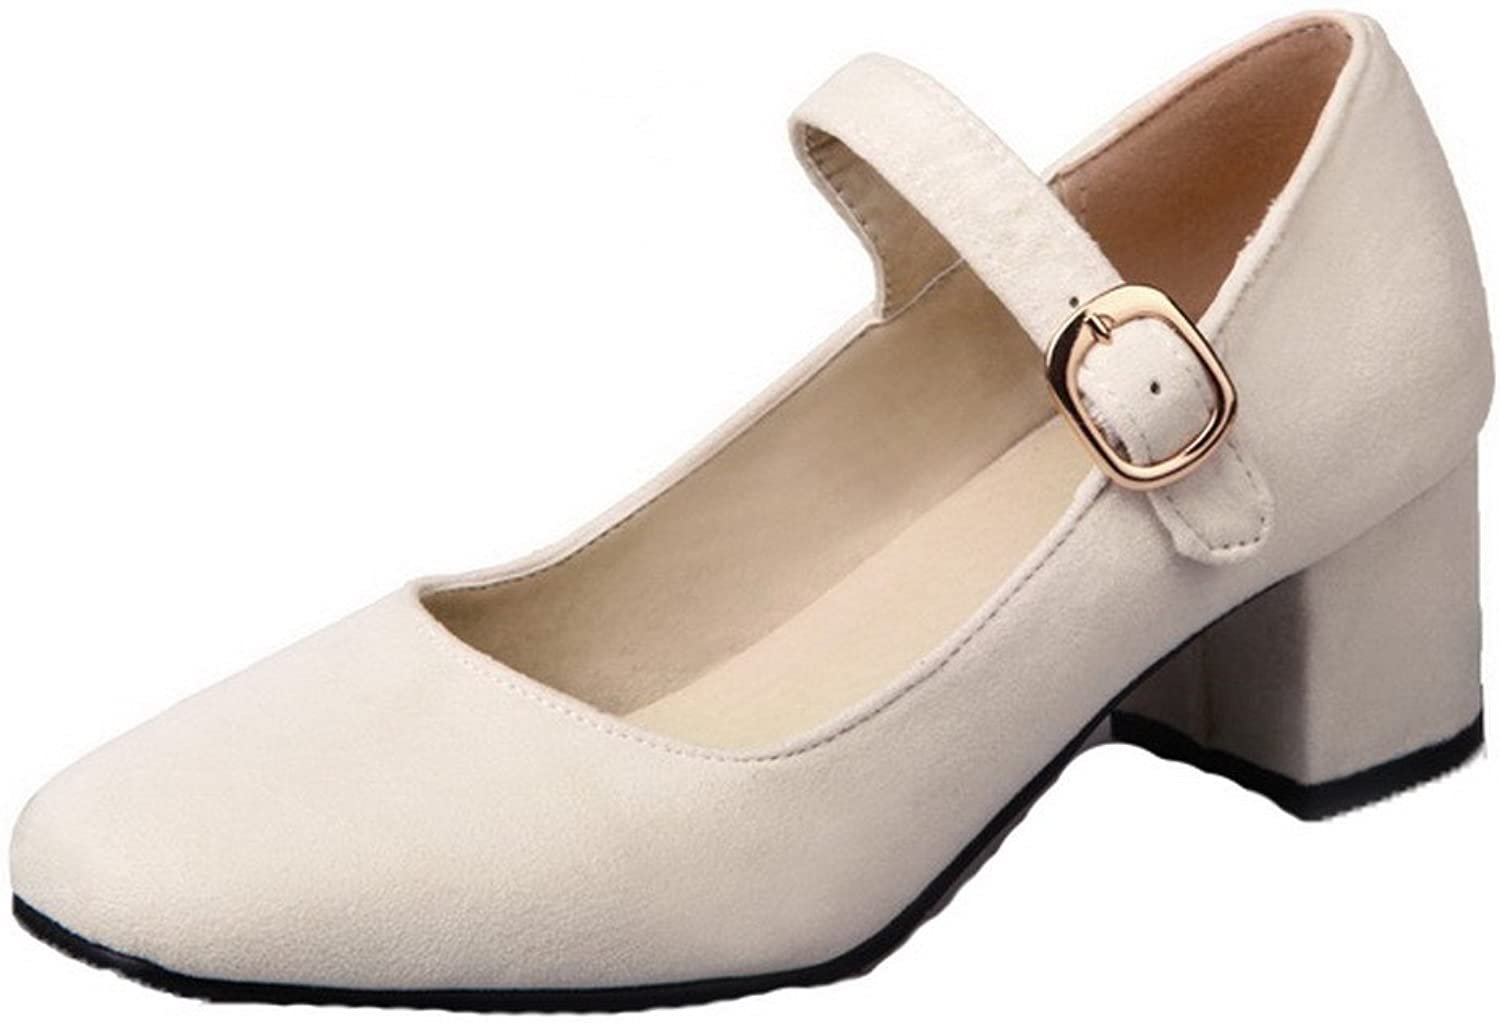 WeenFashion Women's Solid Frosted Kitten-Heels Buckle Square-Toe Pumps-shoes